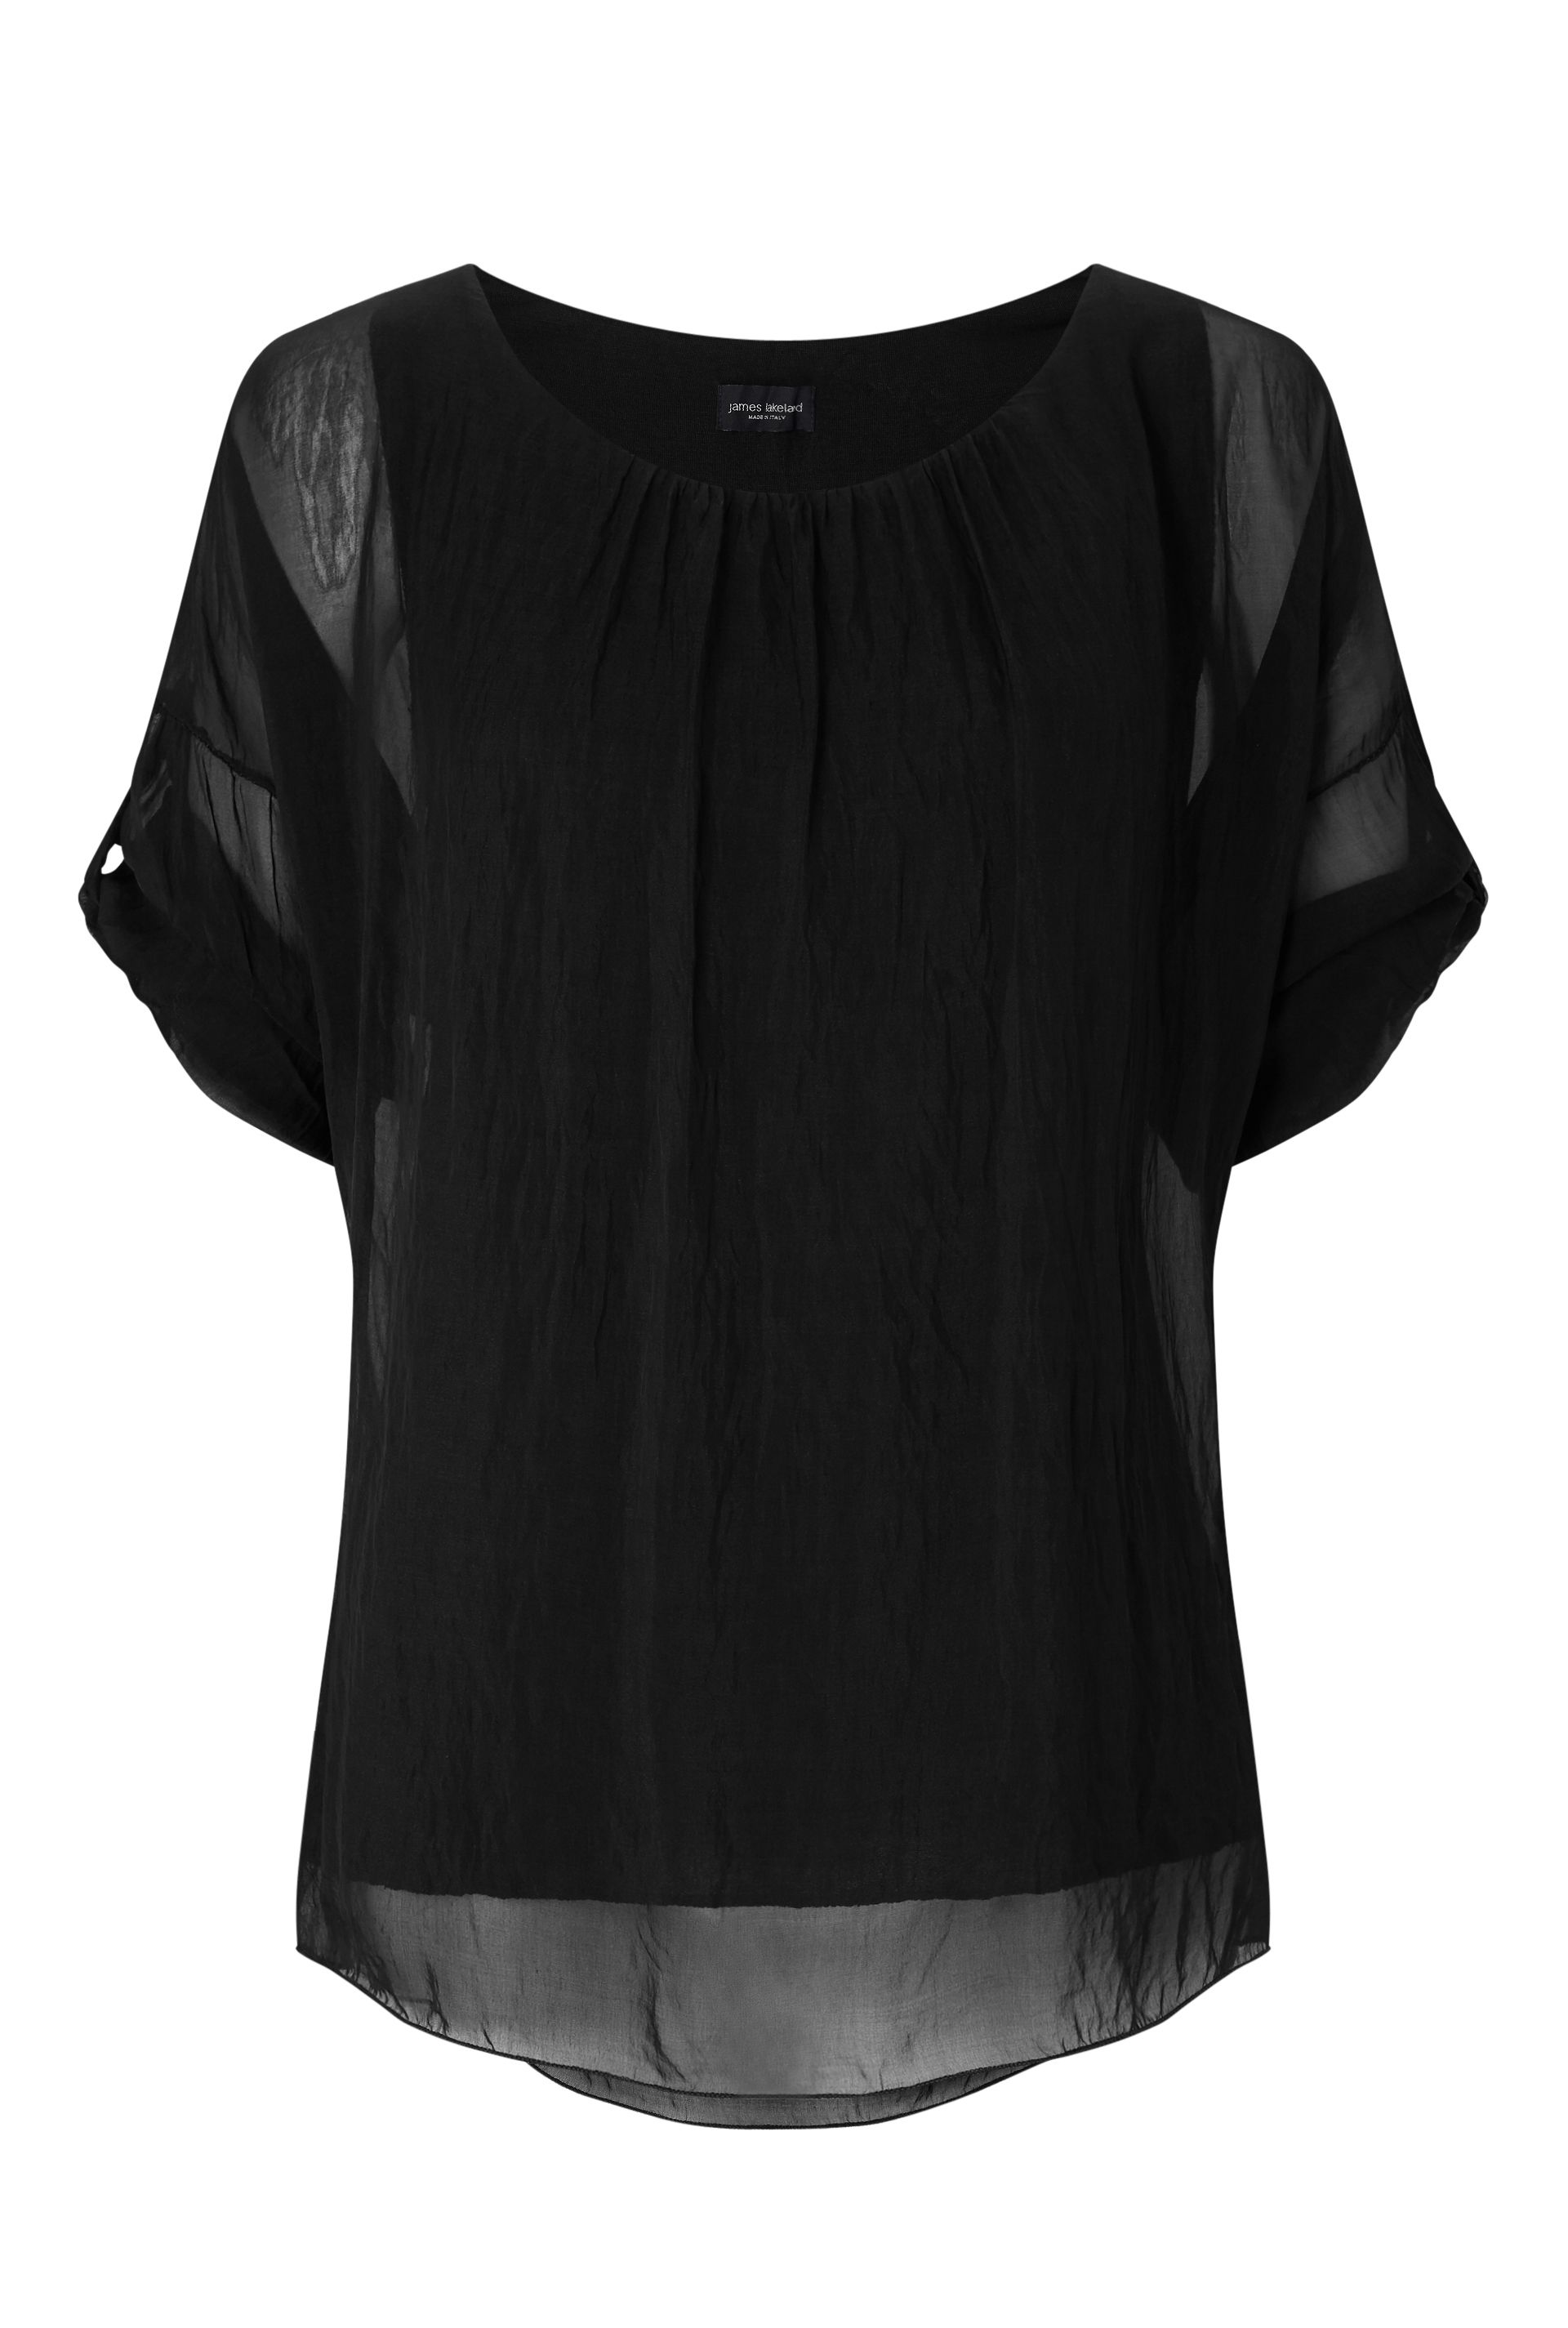 James Lakeland Silk 3/4 Sleeve Top, Black